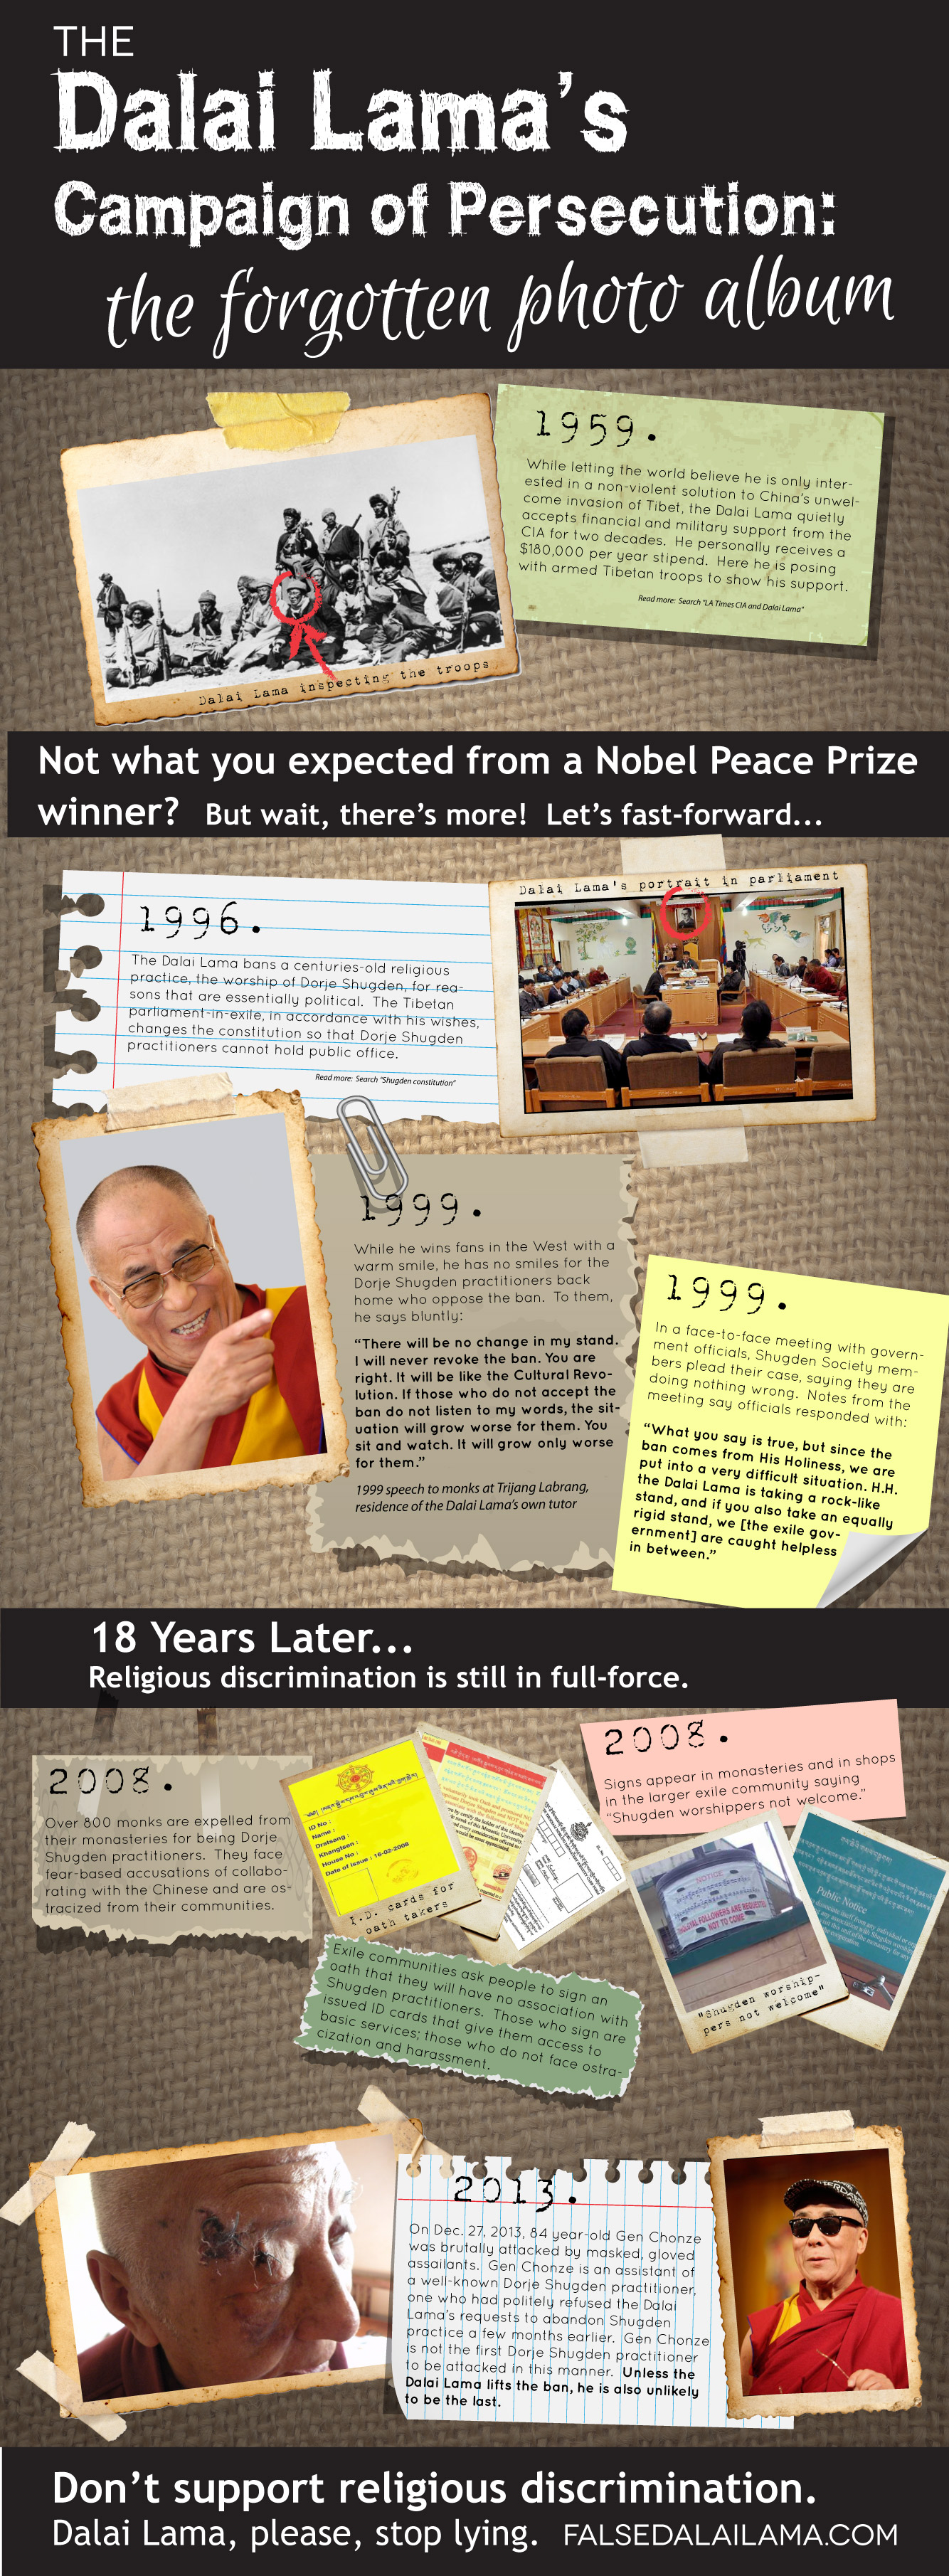 The Dalai Lama's Campaign of Persecution